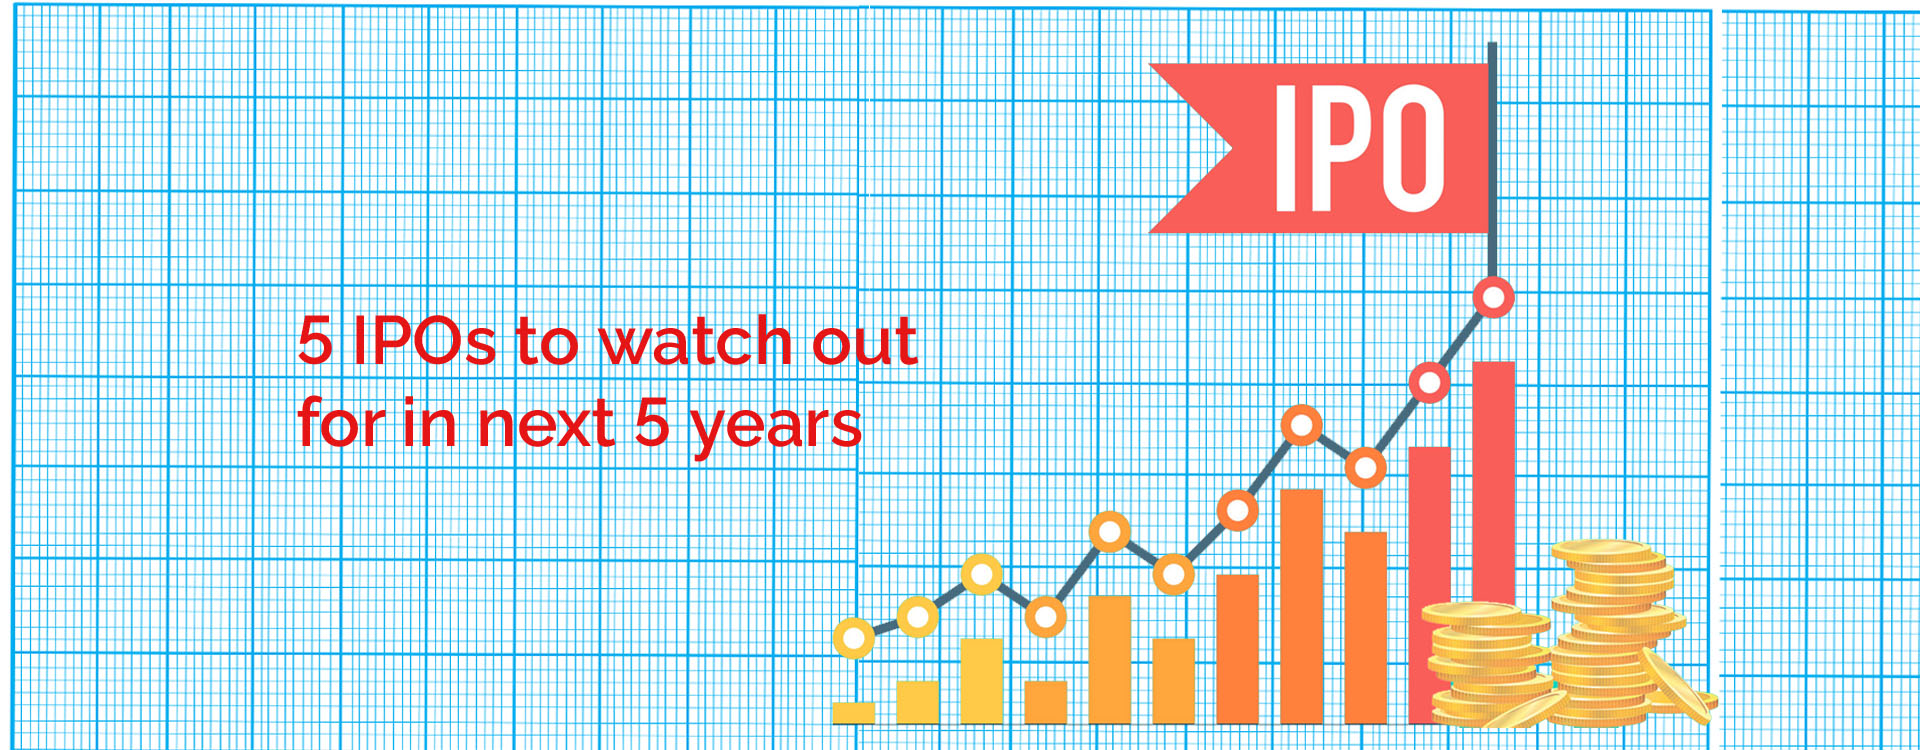 Start-up IPOs to watch out for in next 5 years